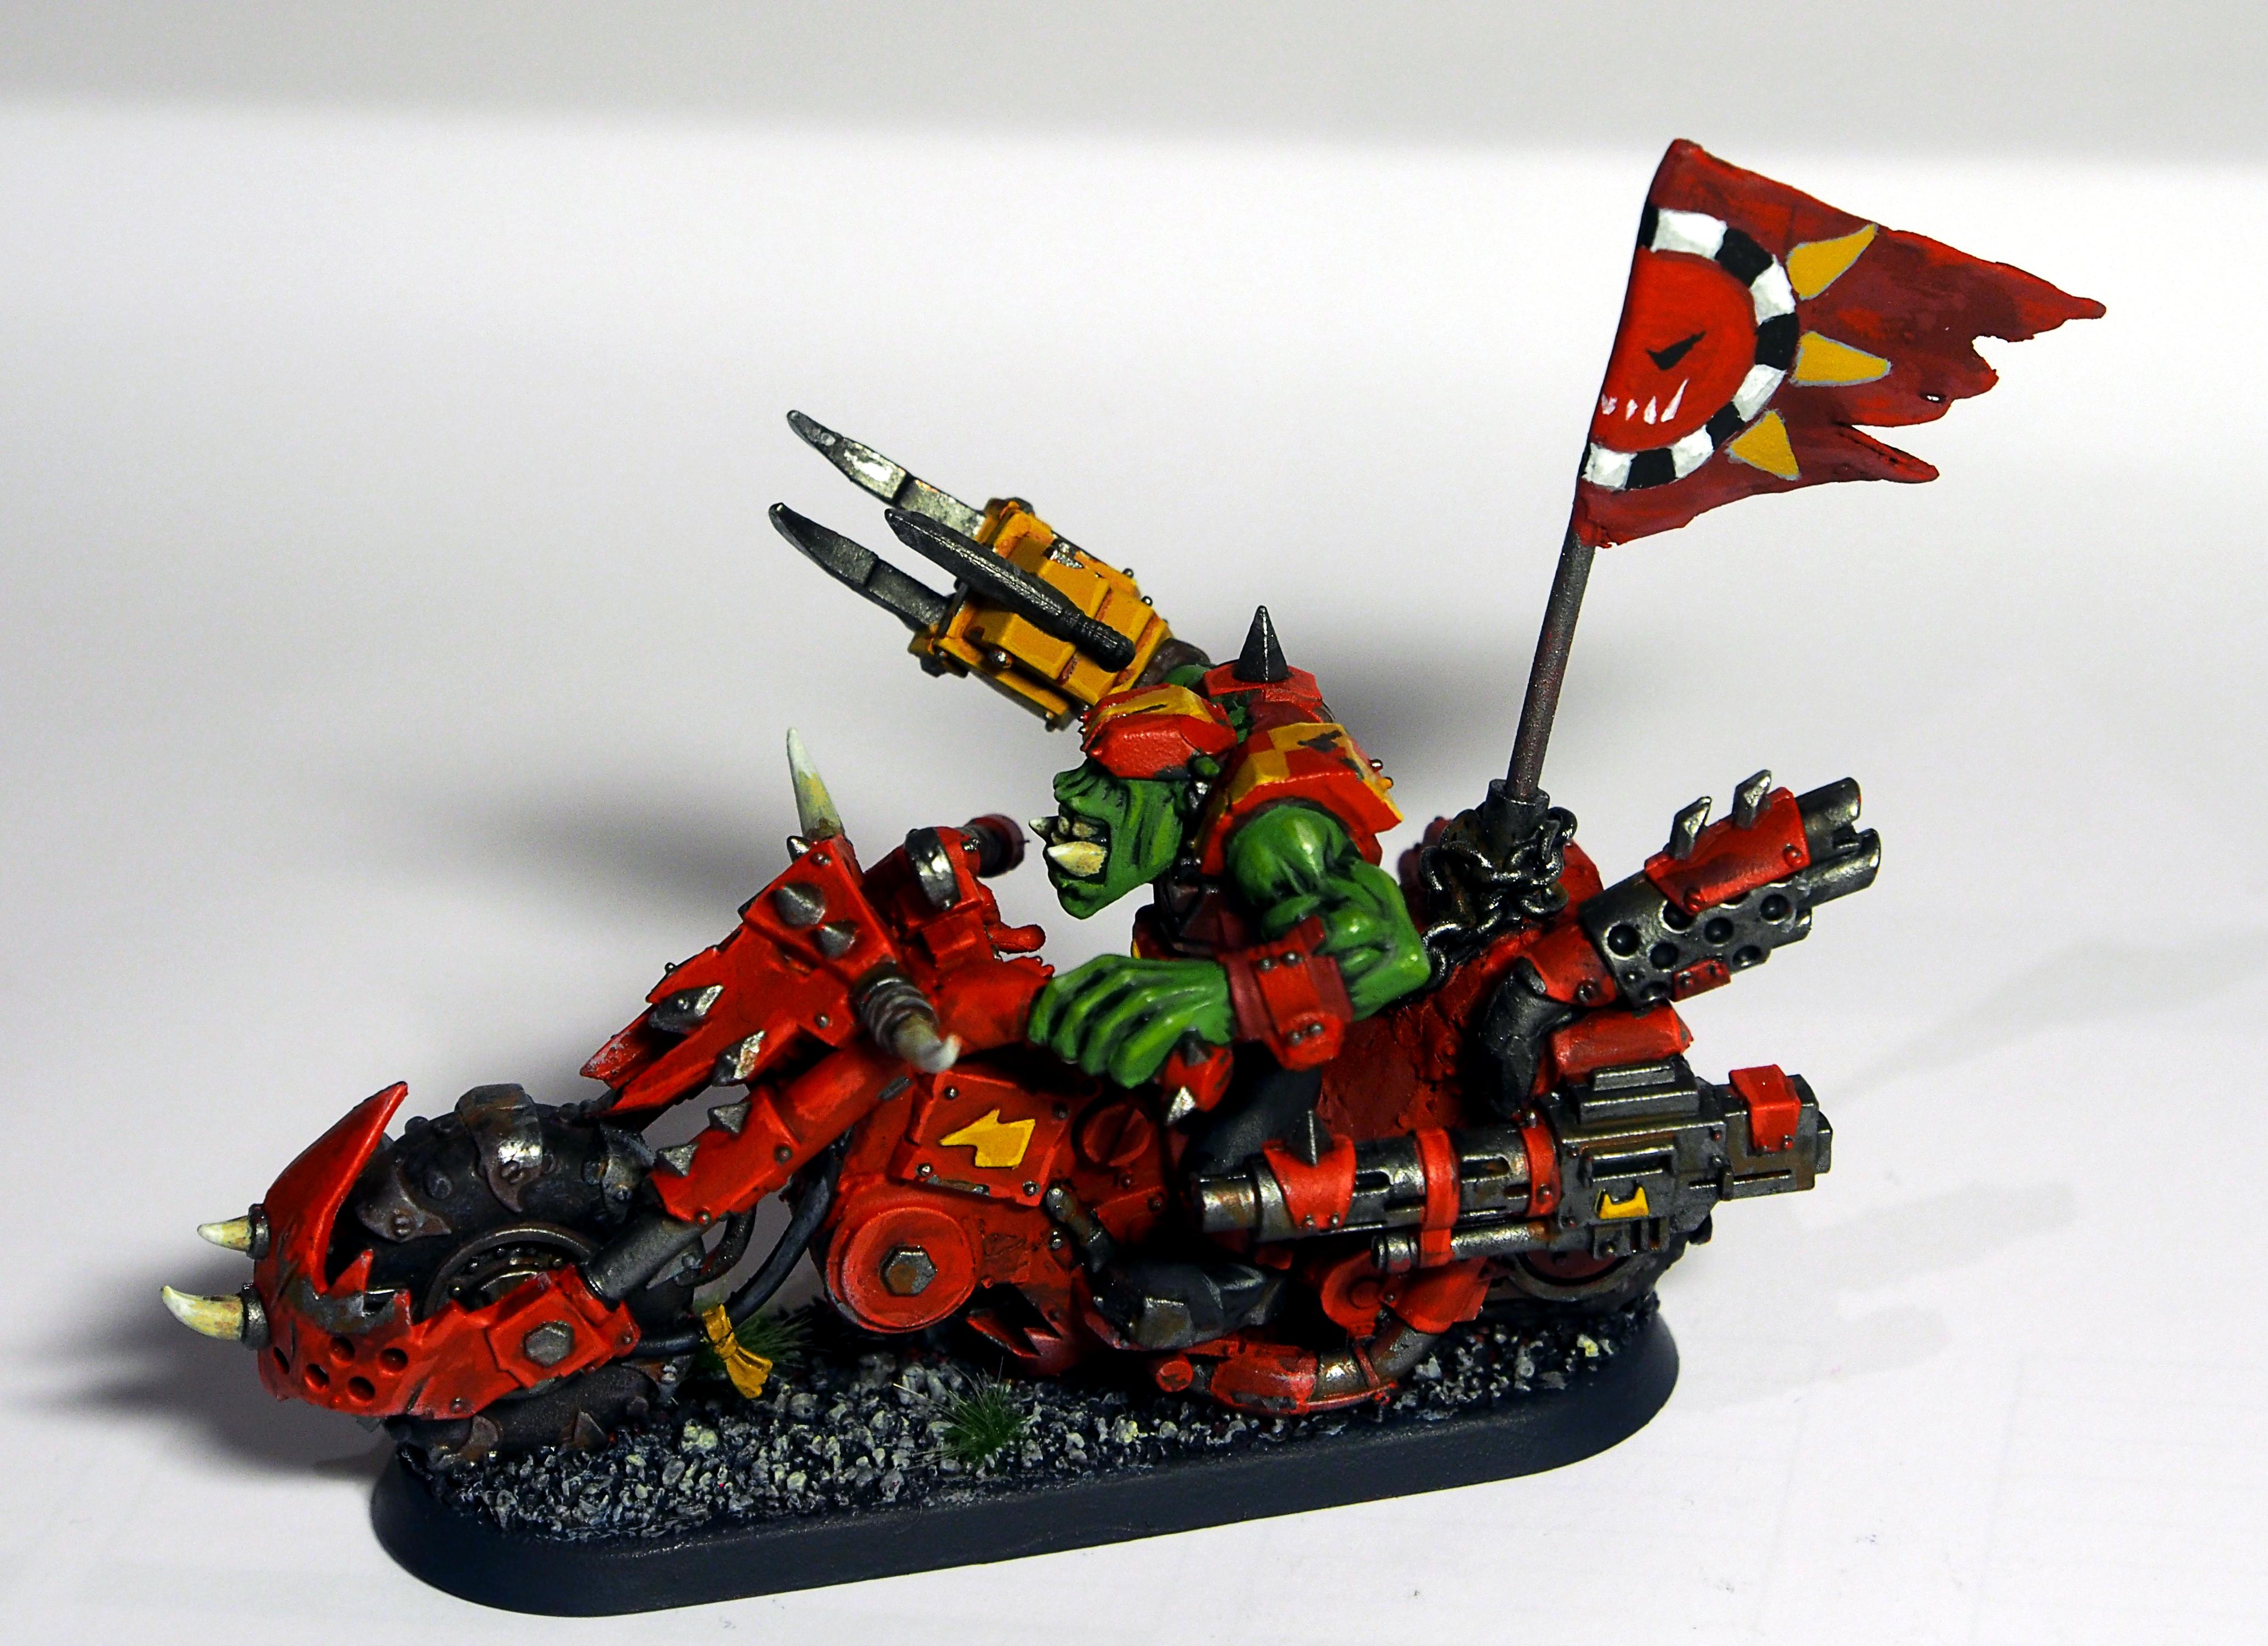 Bike, Evil Suns, Evil Sunz, Flag, Freehand, Orks, Red, Warbikers